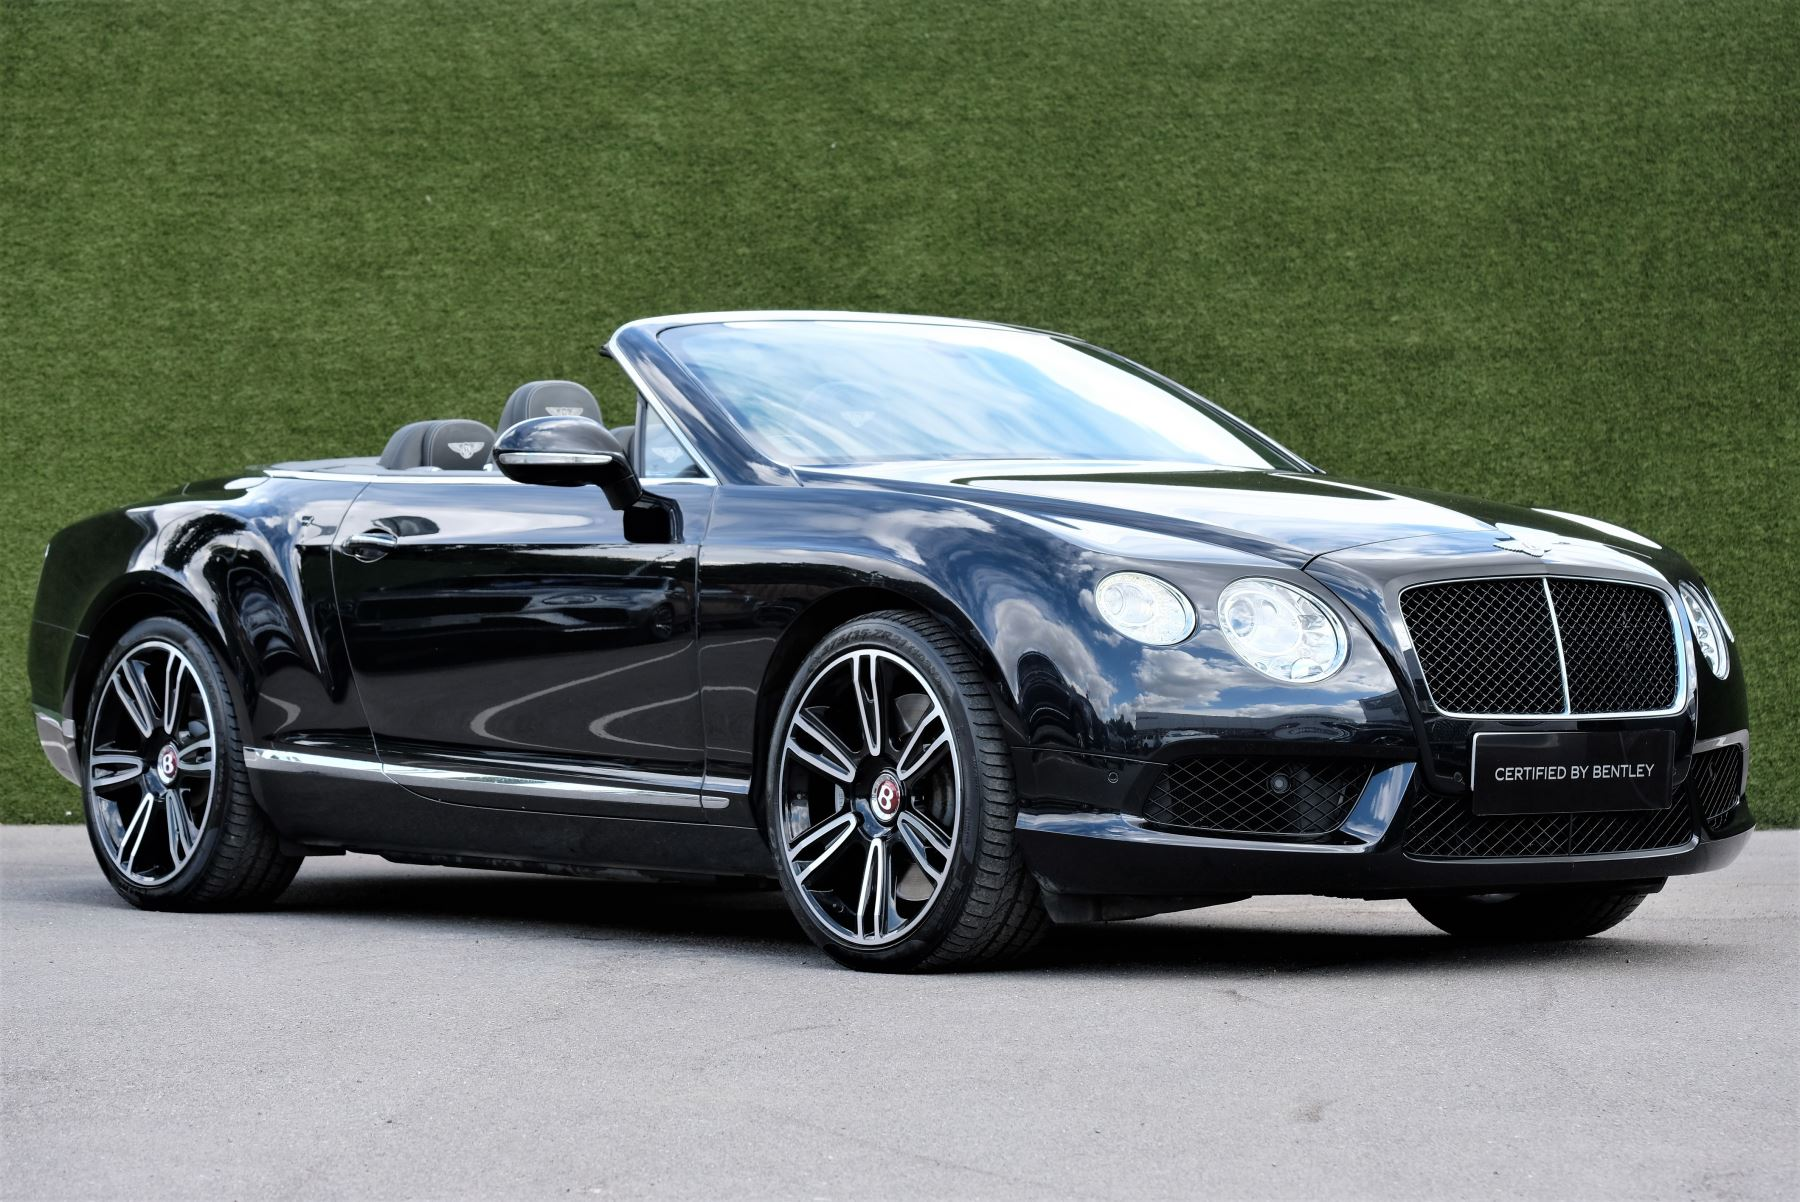 Bentley Continental GTC 4.0 V8 2dr image 30